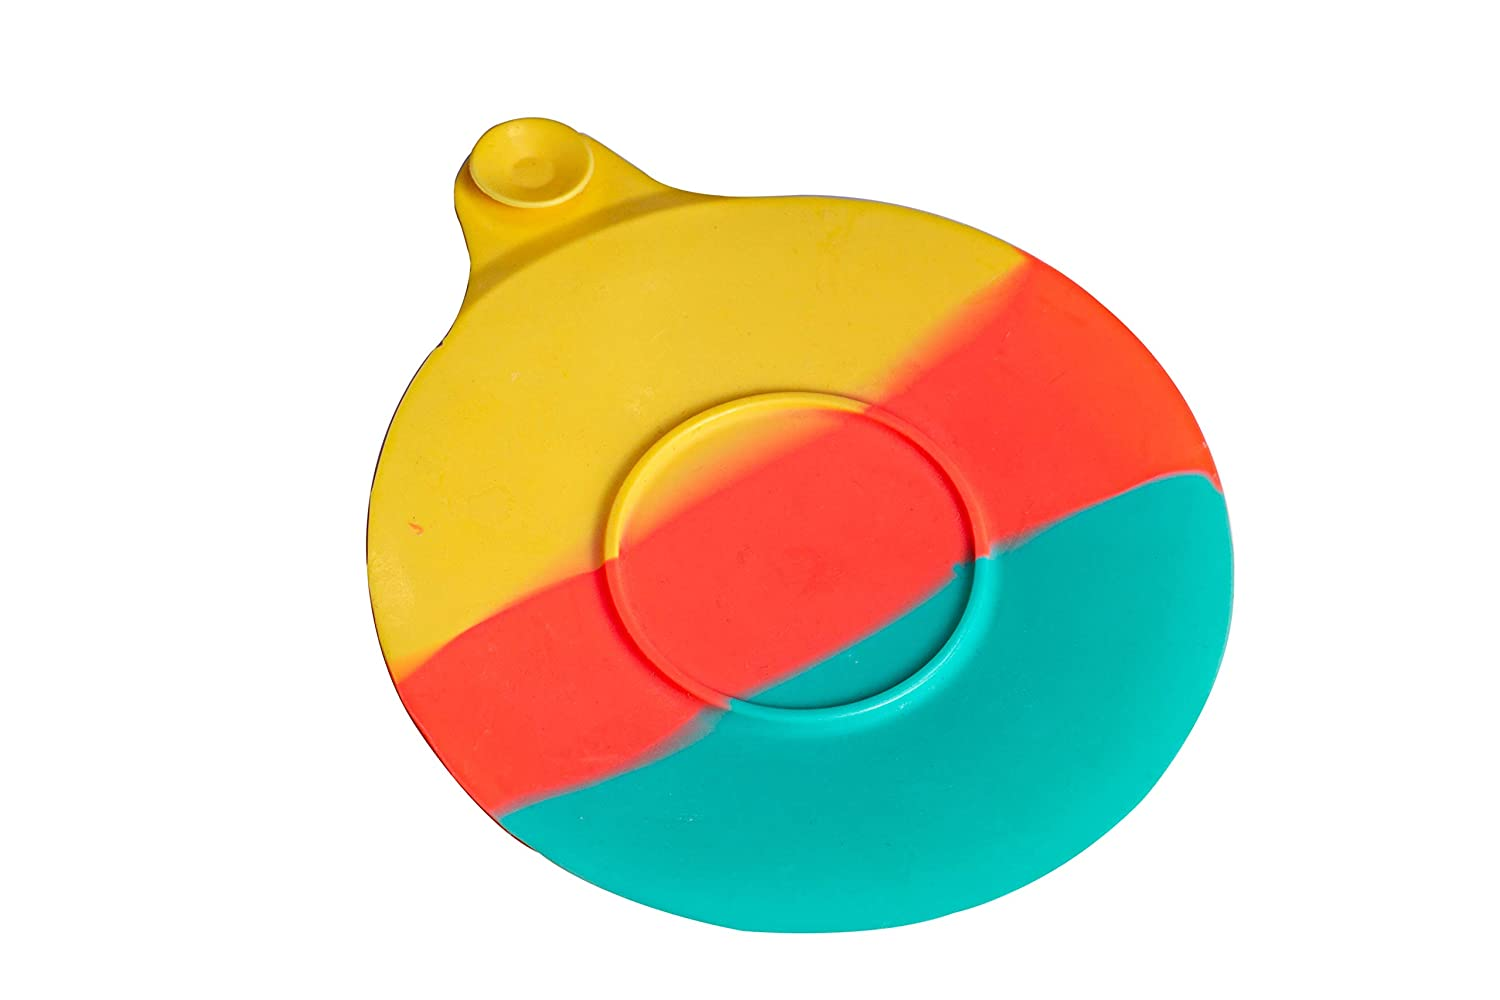 Bath Spout Cover Offers a Soft /& Flexible Silicone Bath Faucet Cover for Your Bathtub Great for Baby Bath Safety /& Baby Bath Toys Rainbow Colorful Elephant Bathtub Faucet Extender Protector for Baby